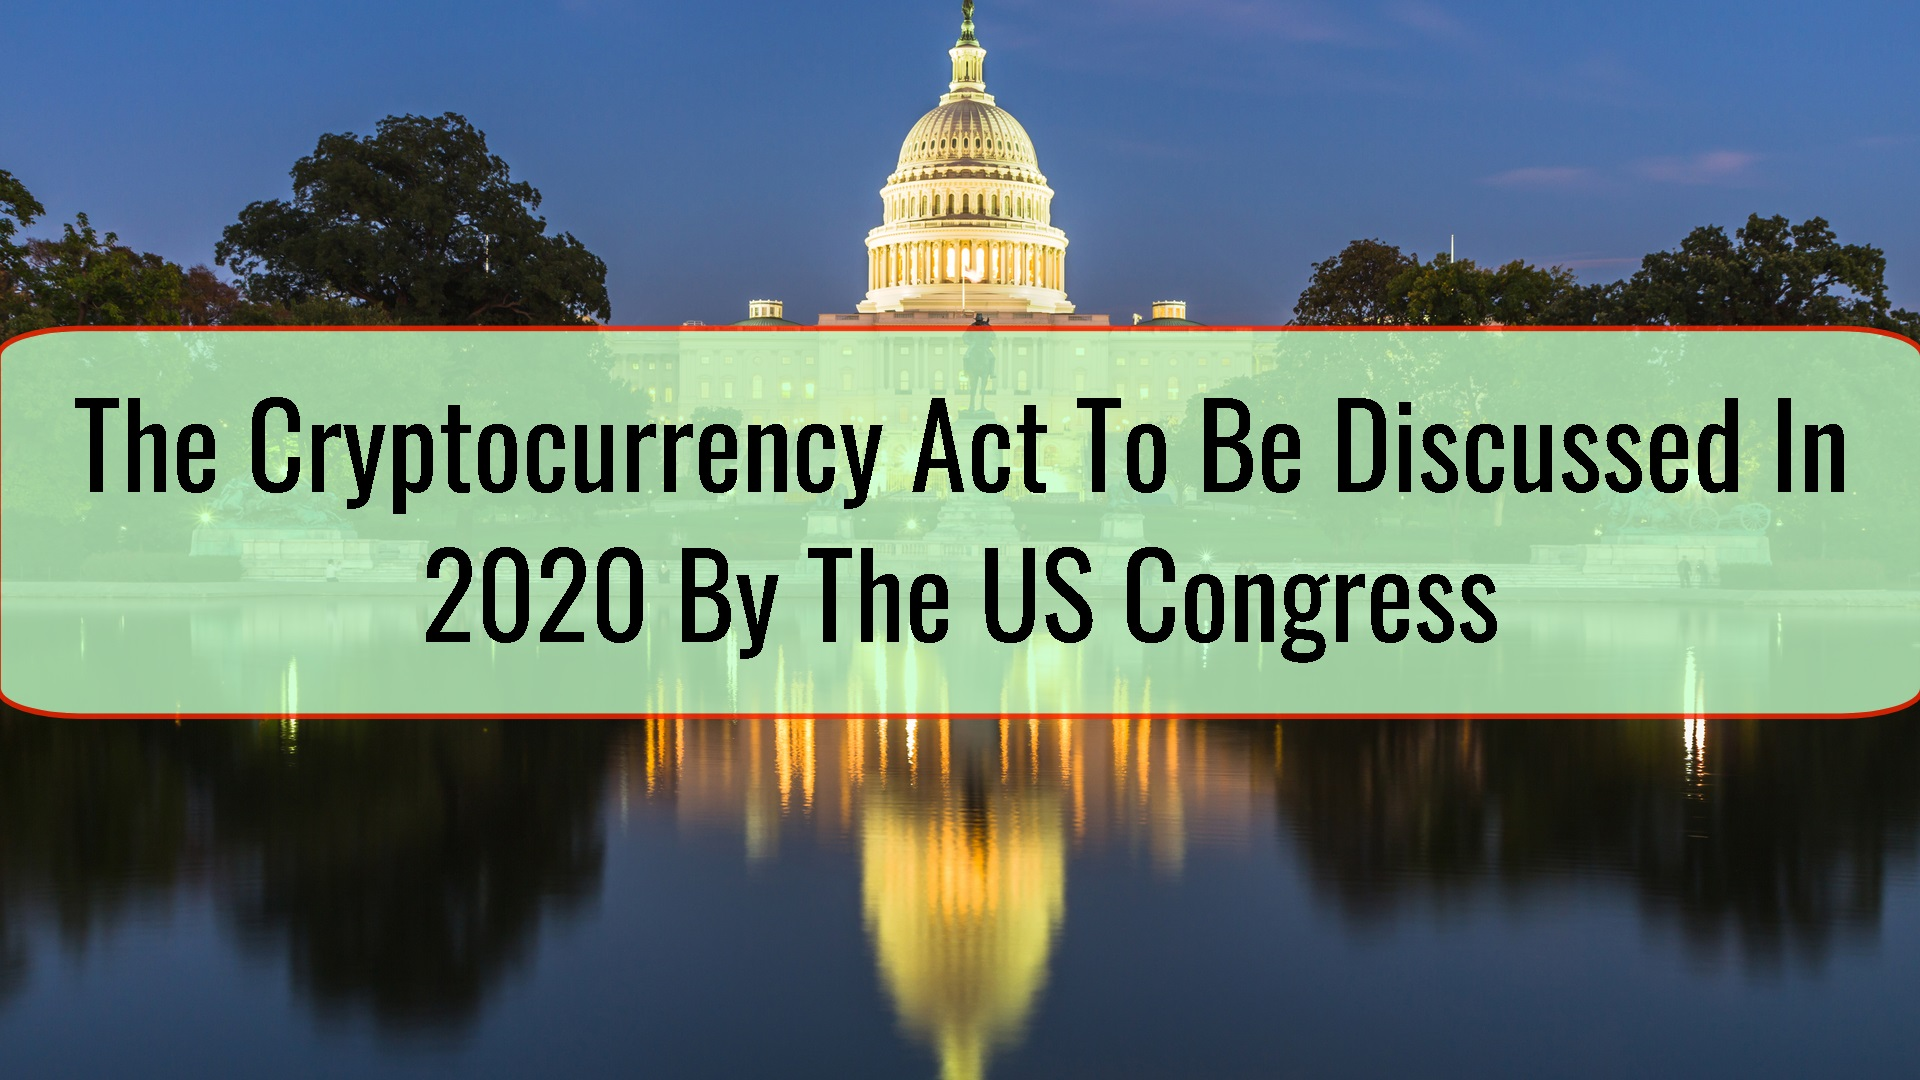 The Cryptocurrency Act To Be Discussed In 2020 By The US Congress